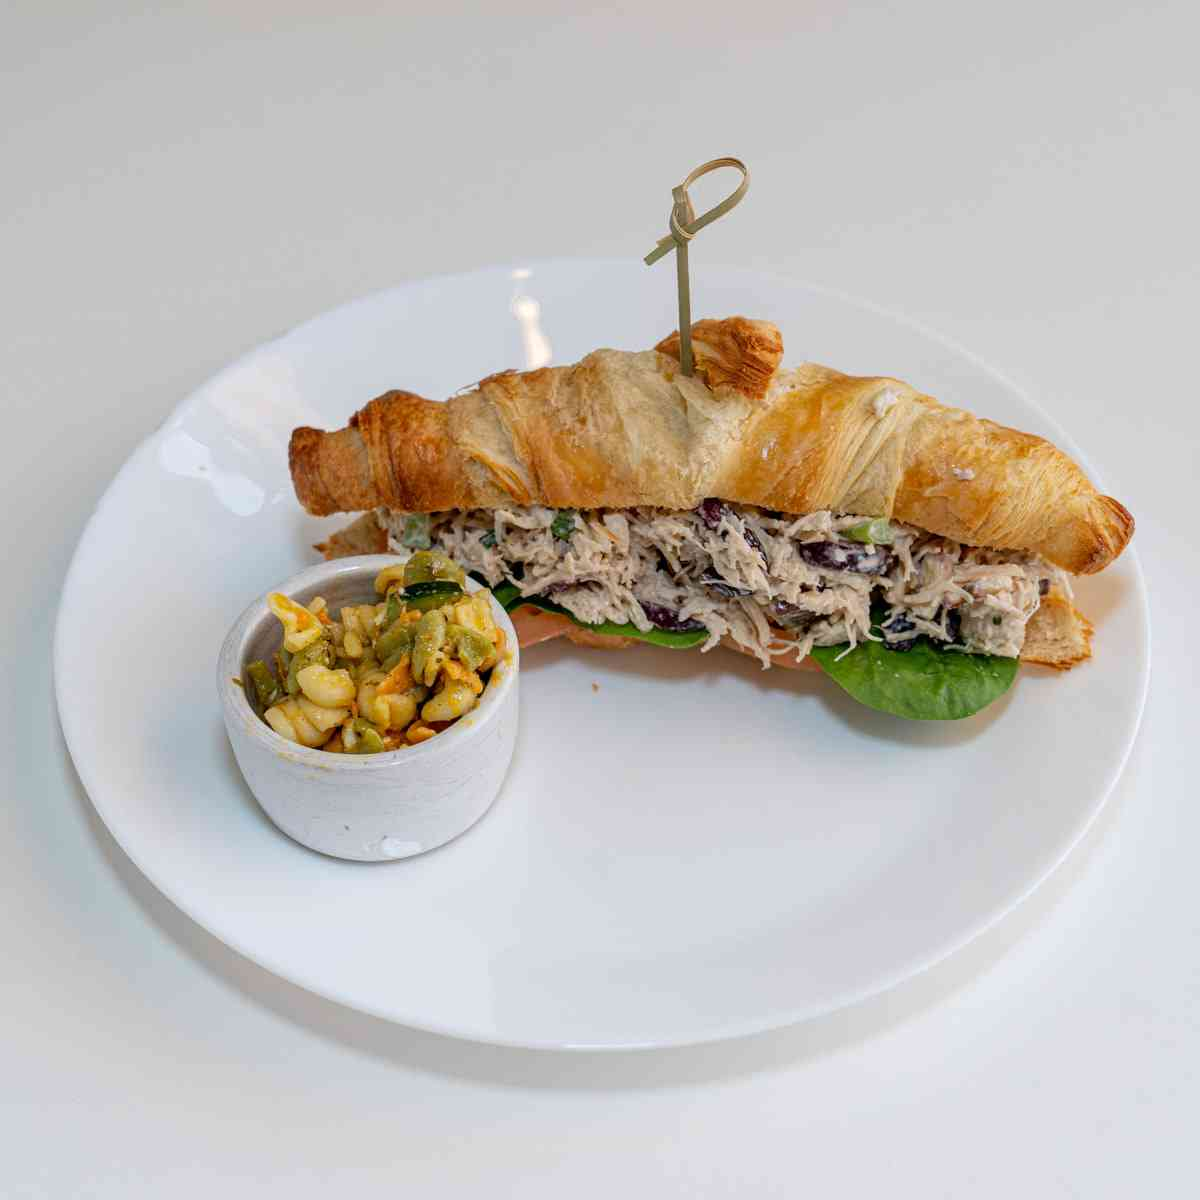 Stuffed Chicken Salad in a Butter Croissant